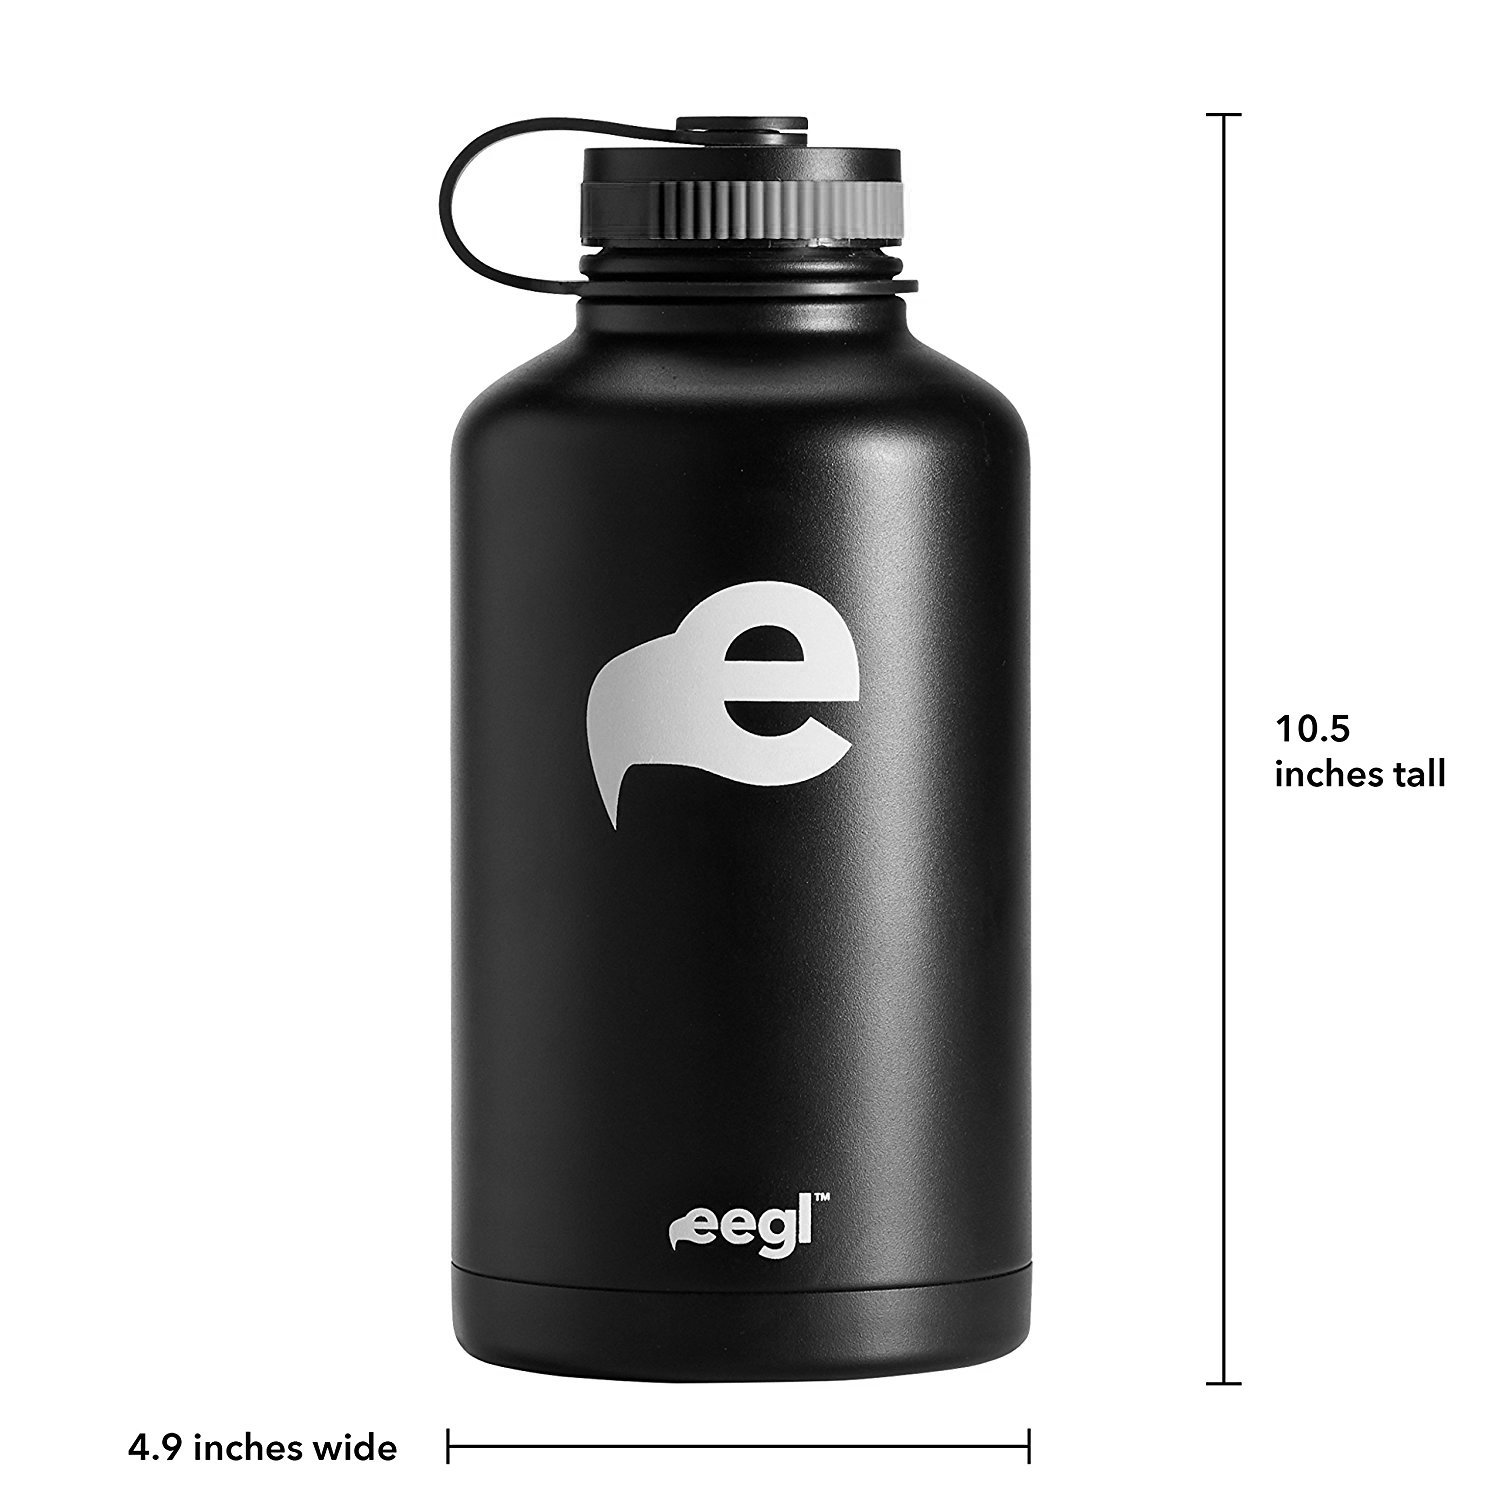 Stainless Steel Insulated Beer Growler - 64 oz Water Bottle - Includes Carry Case - Double Wall Vacuum Sealed Wide Mouth Design. Five Year Guarantee! Perfect Temperature Control from eegl by eegl (Image #2)